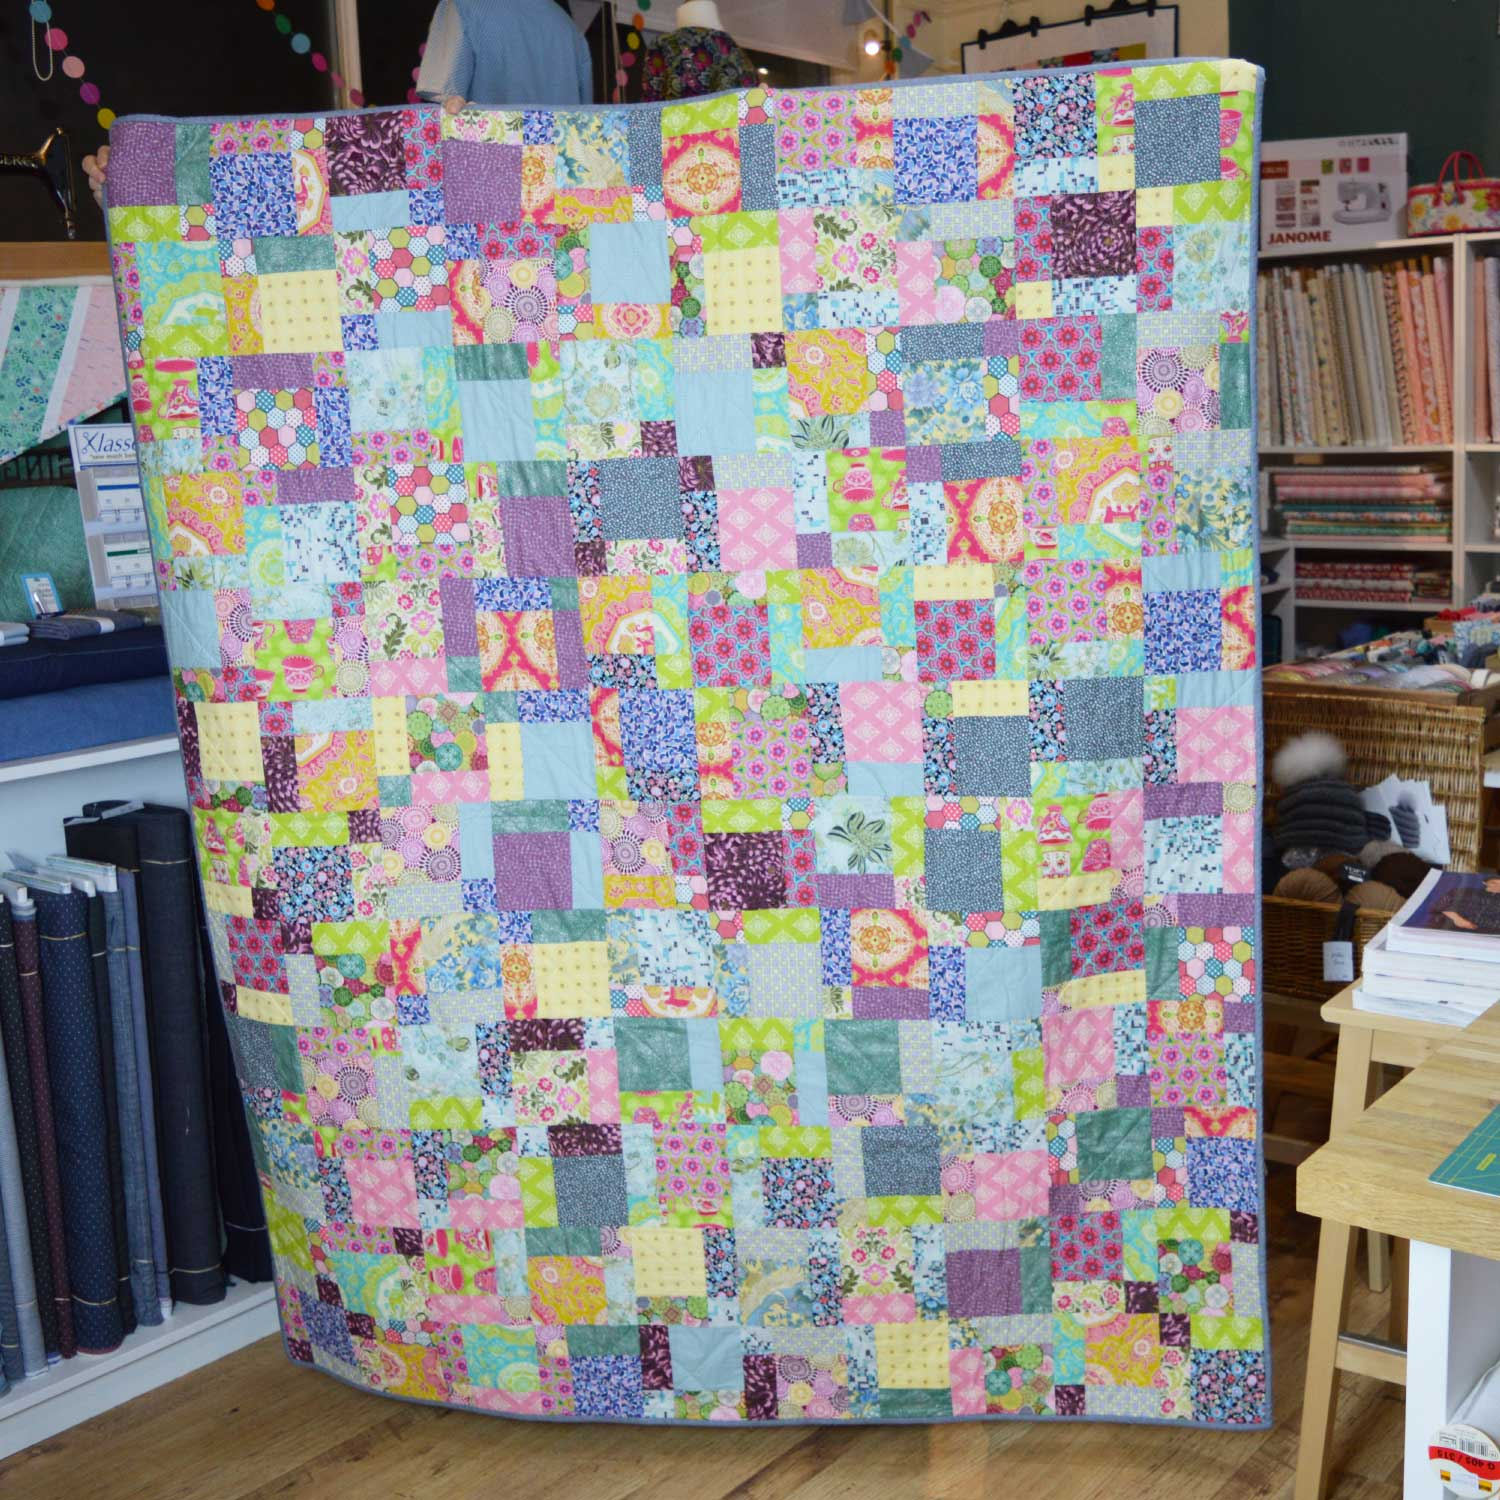 Sewn at Holm Sown: Customer Nine Patch Quilt - scrap buster | Holm Sown